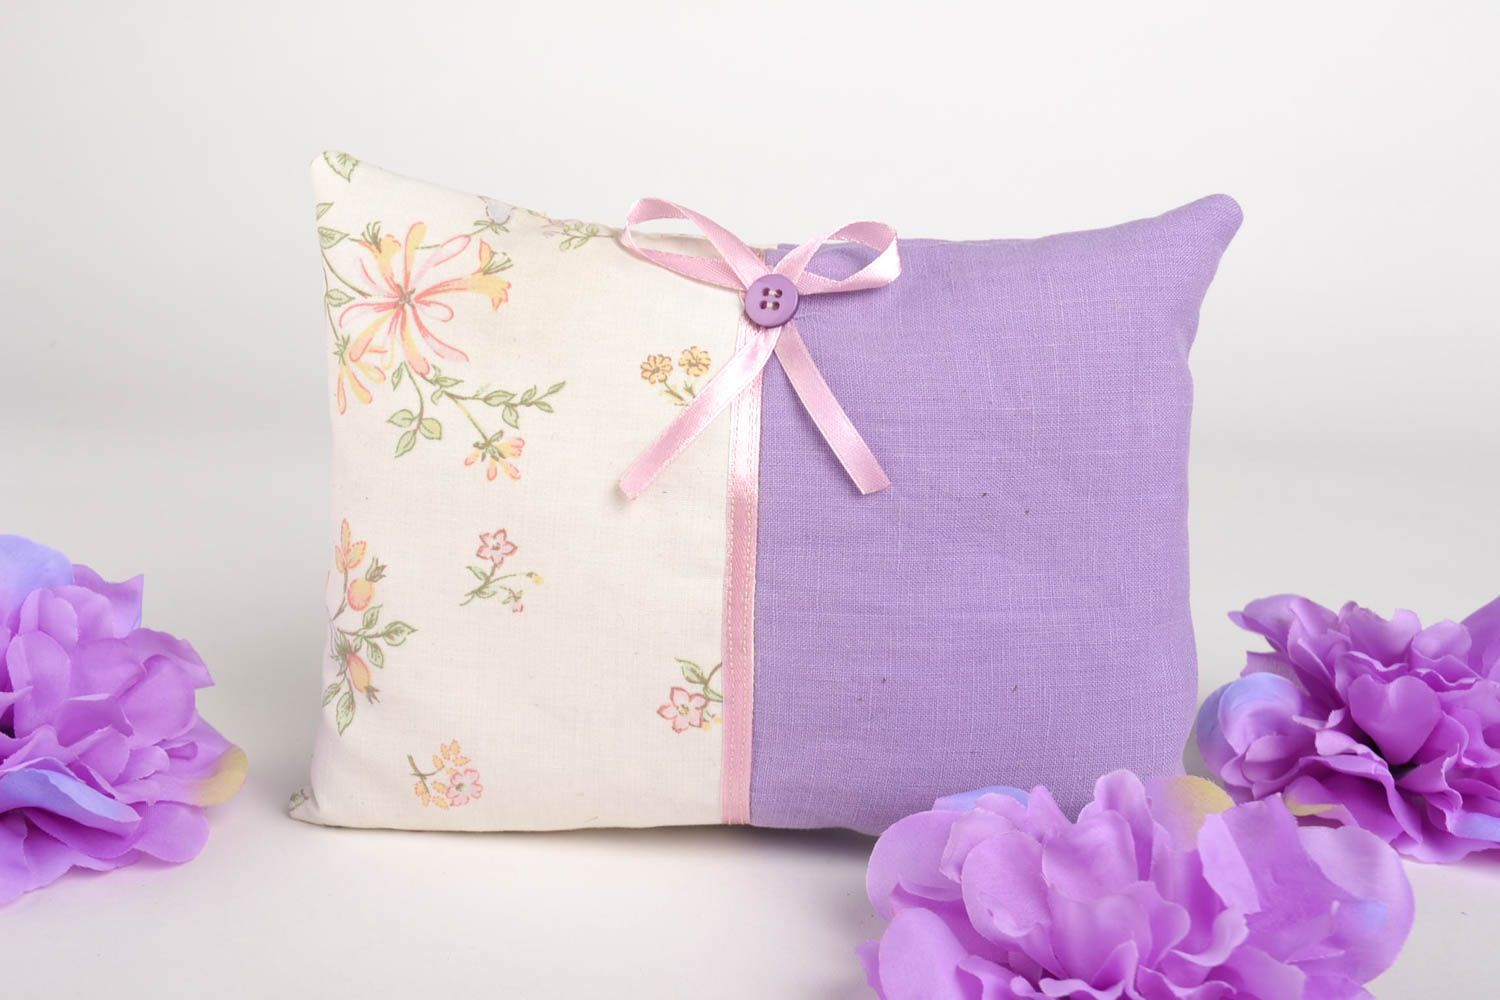 Homemade scented sachet therapeutic pillows aroma therapy home decorations photo 1